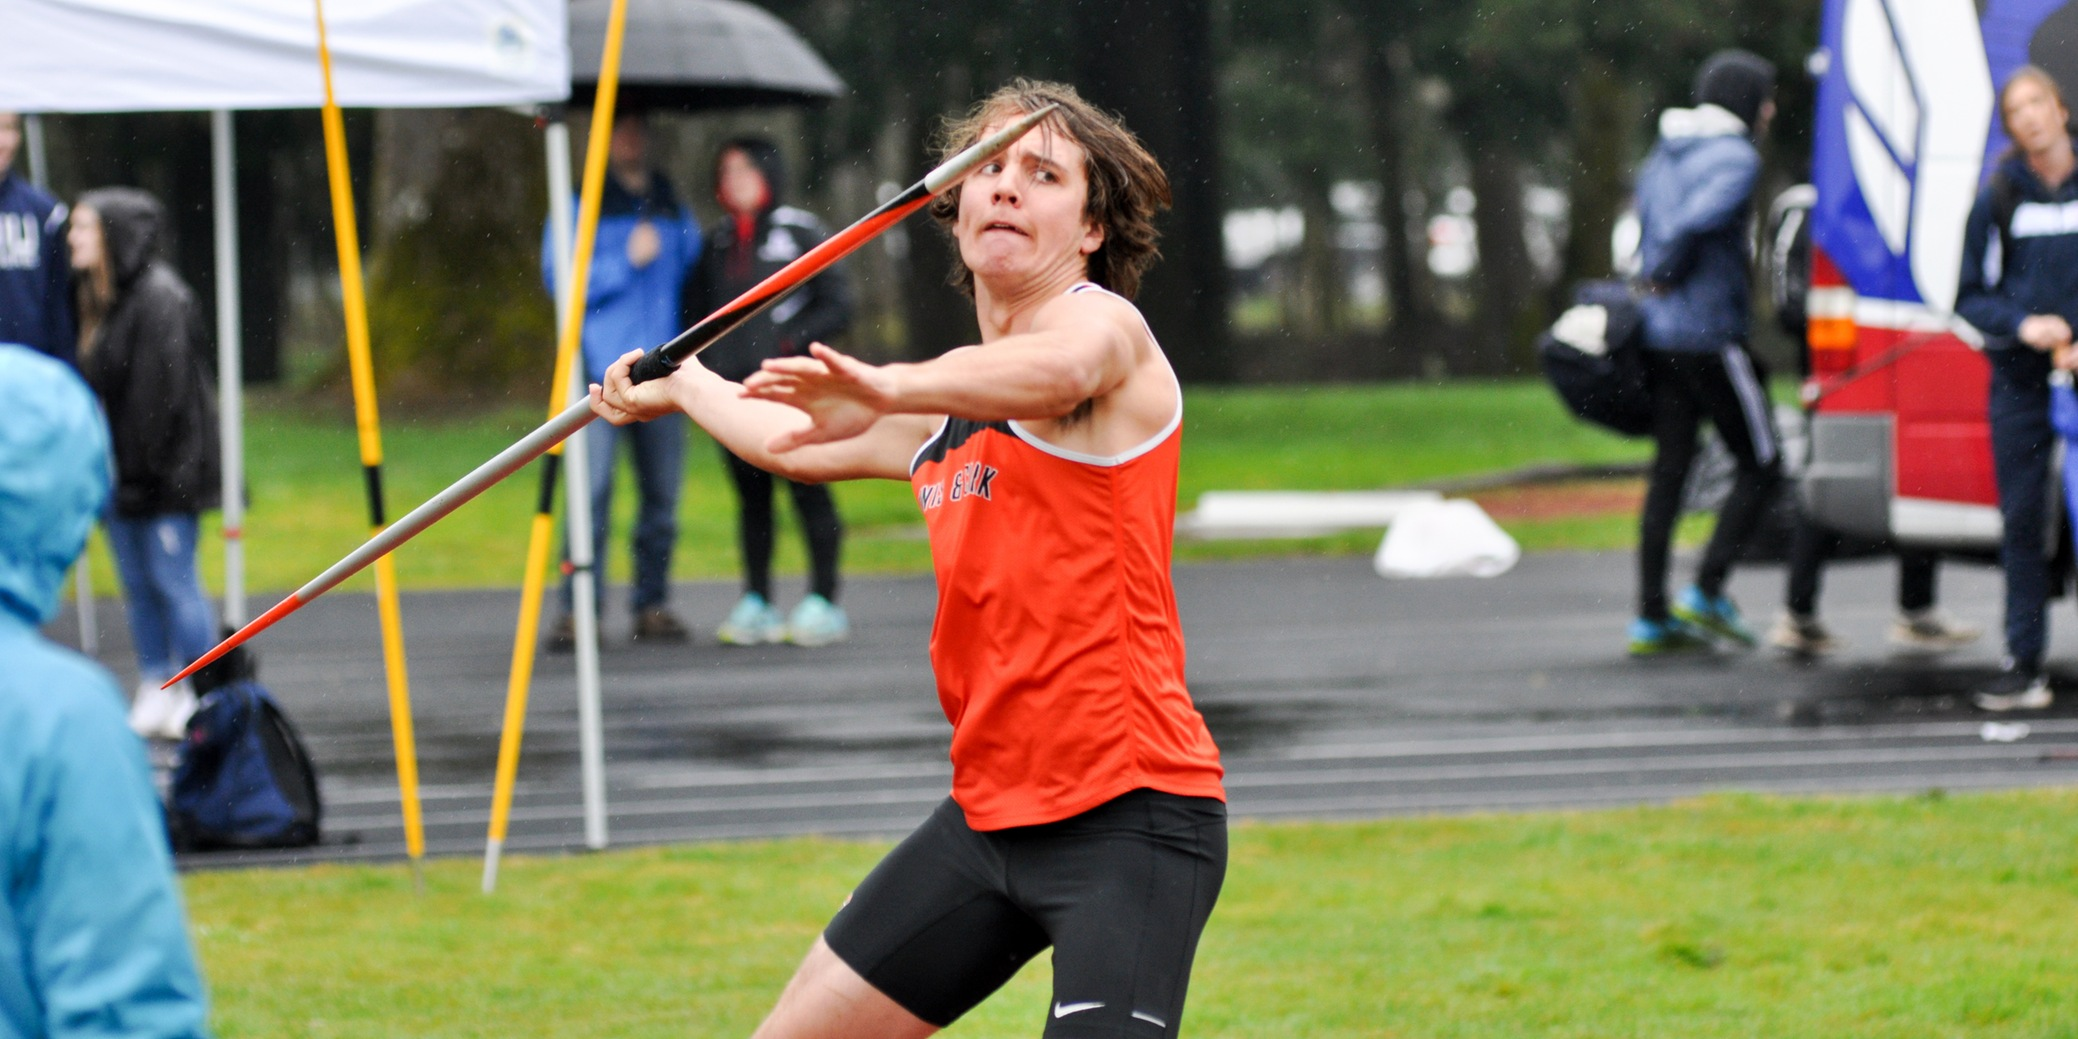 Avery leads way as three Pioneers qualify for NWC Championships